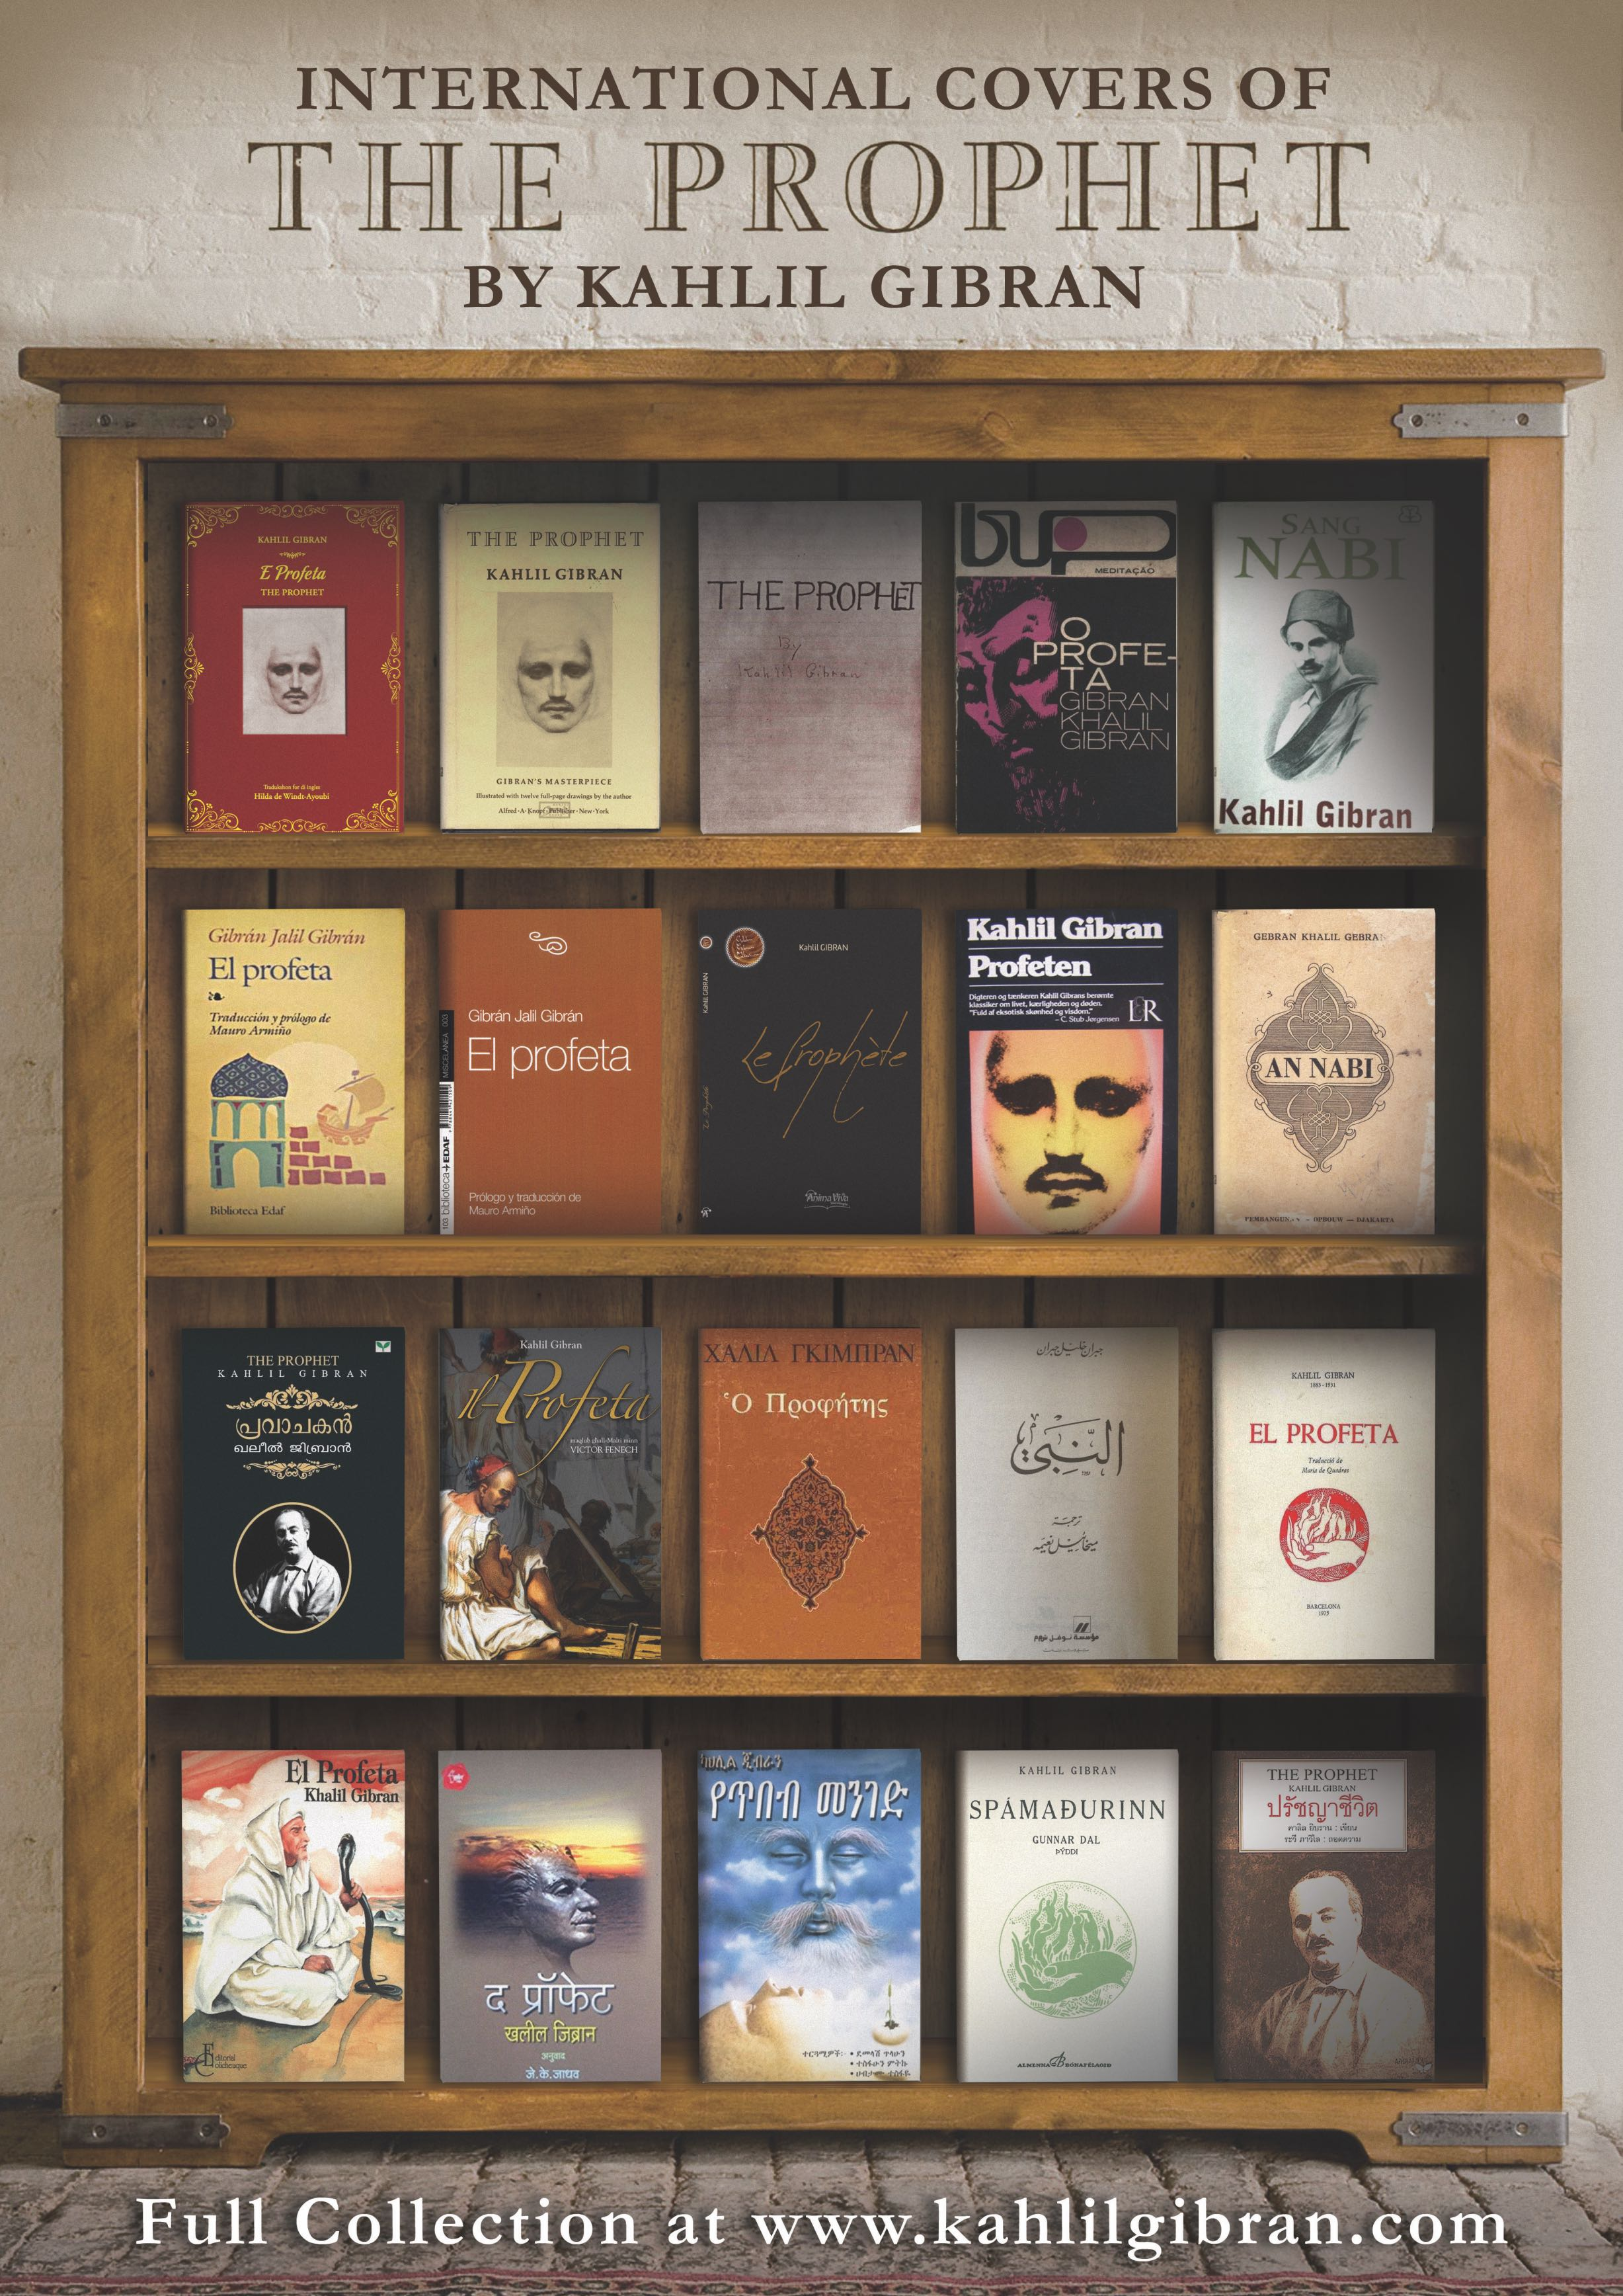 International Book Covers of the Prophet - Photo: The Kahlil Gibran Collective